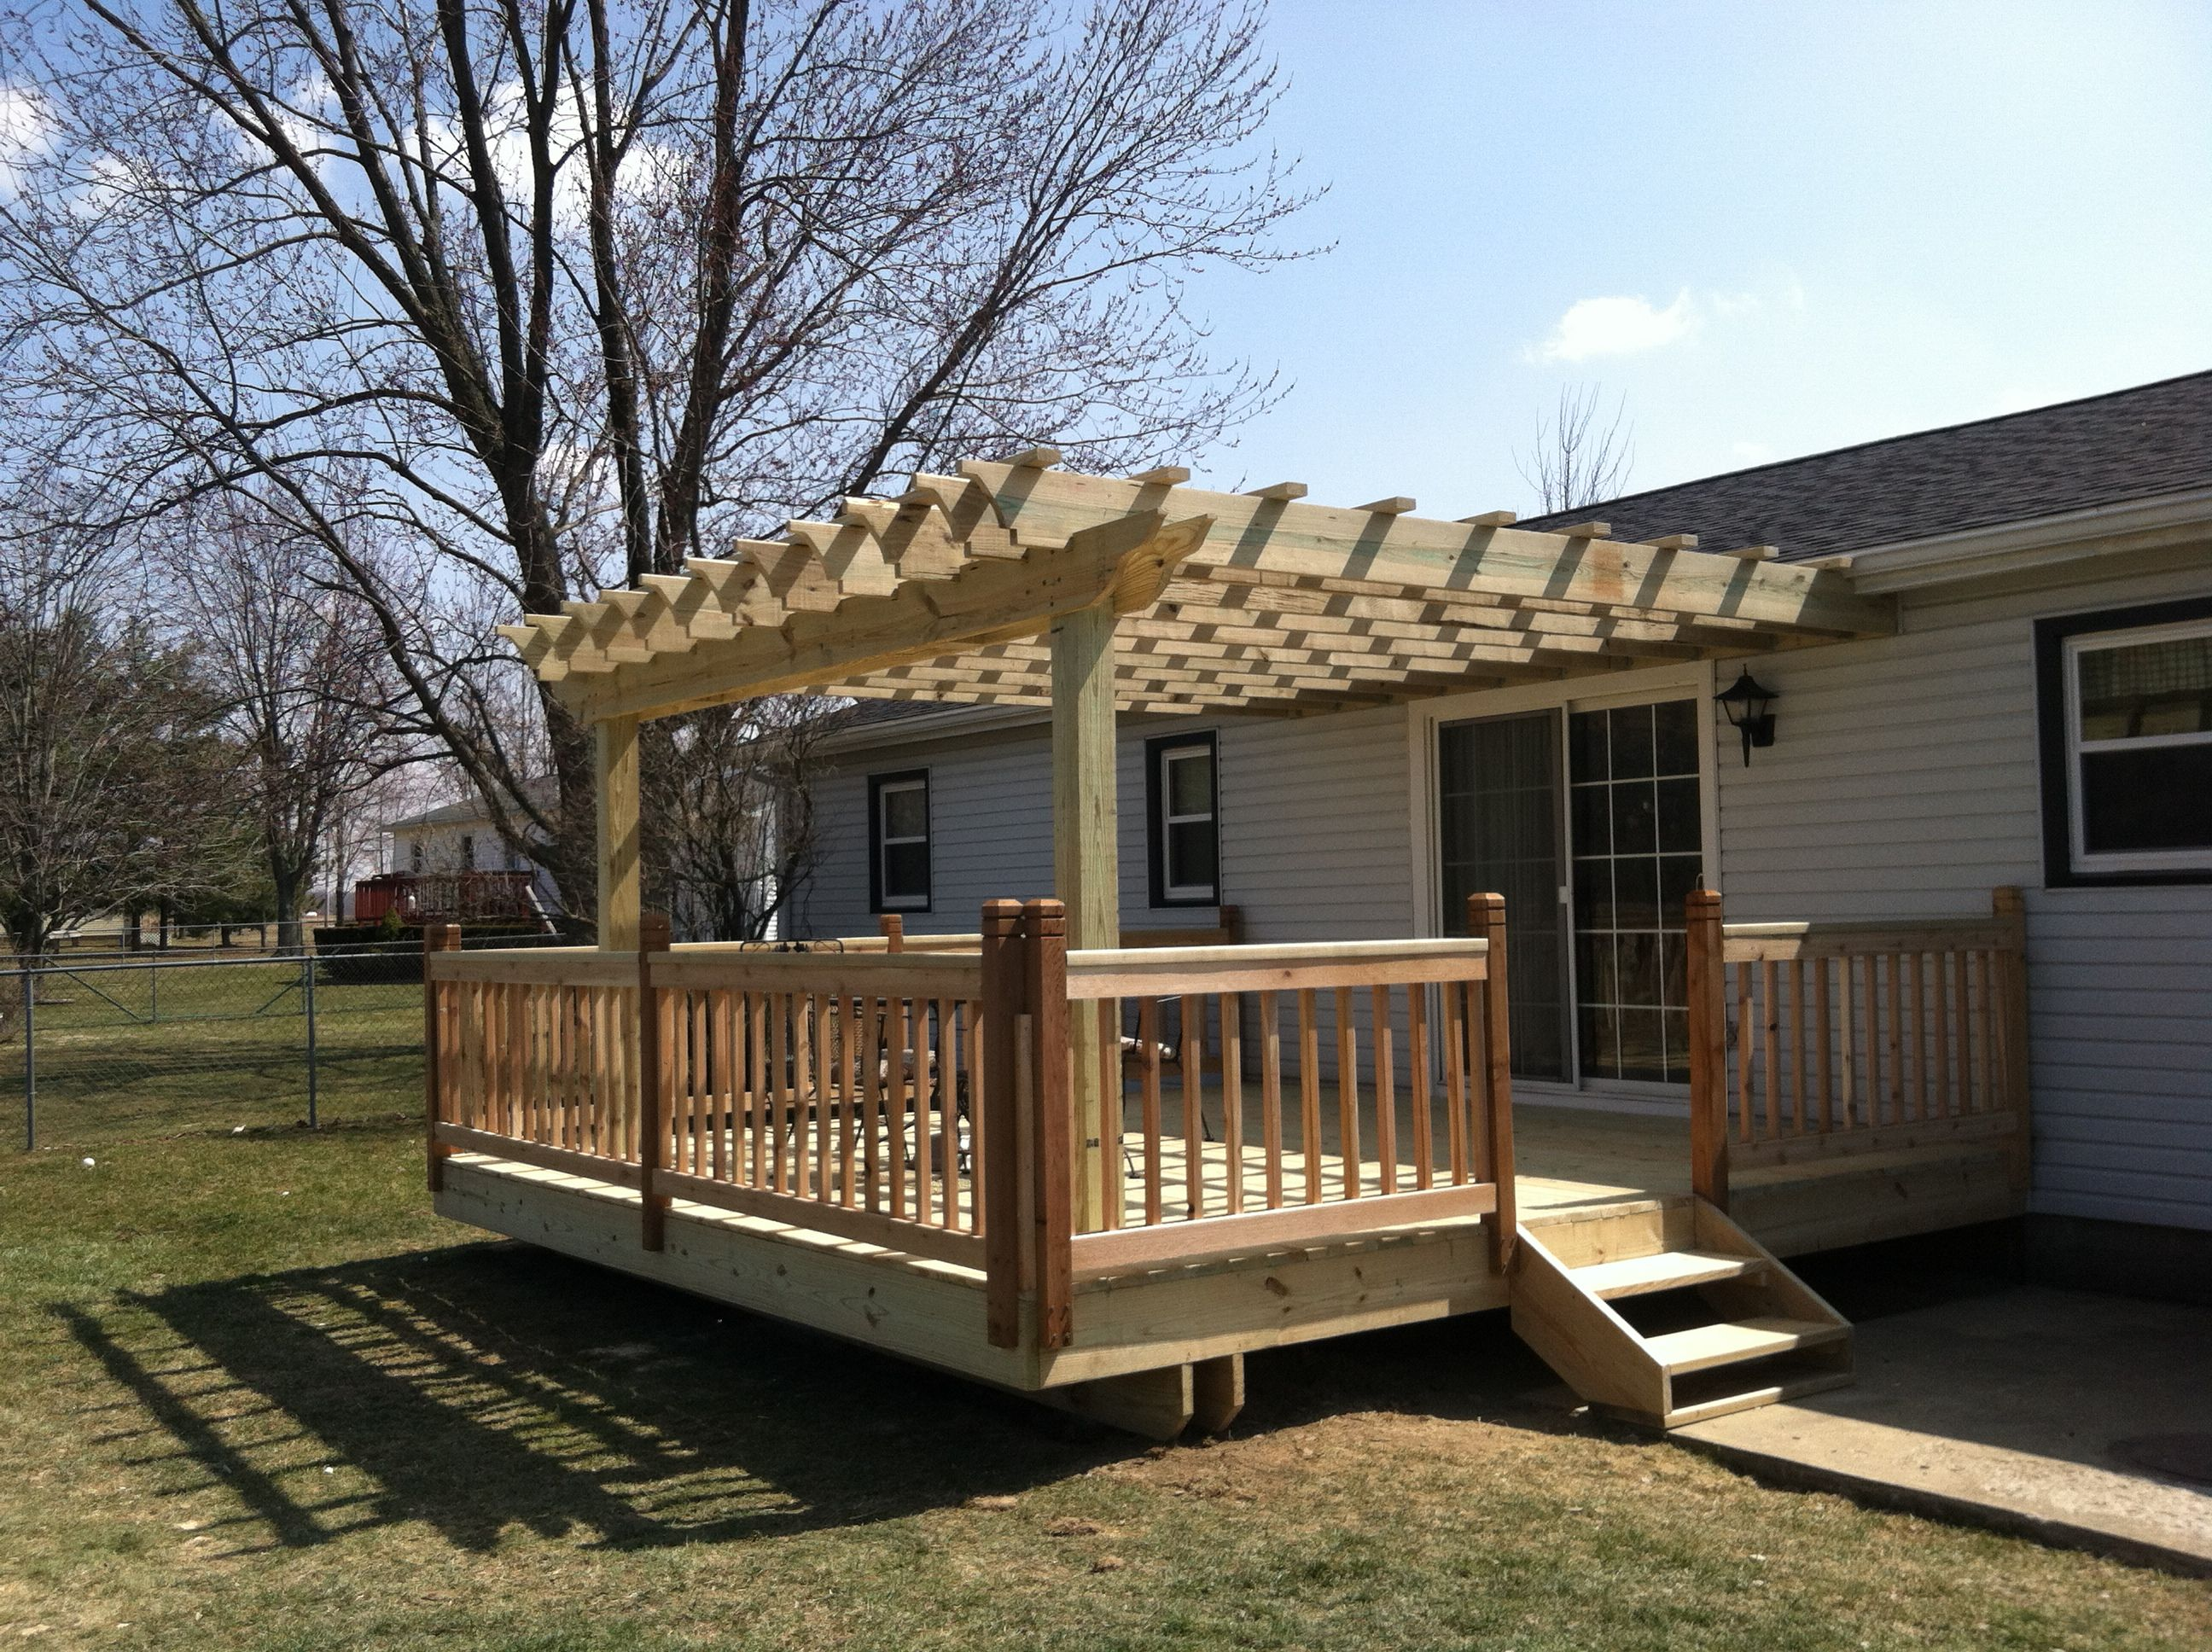 16x16 Deck With Pergola And Cedar Railings Deck Ideas